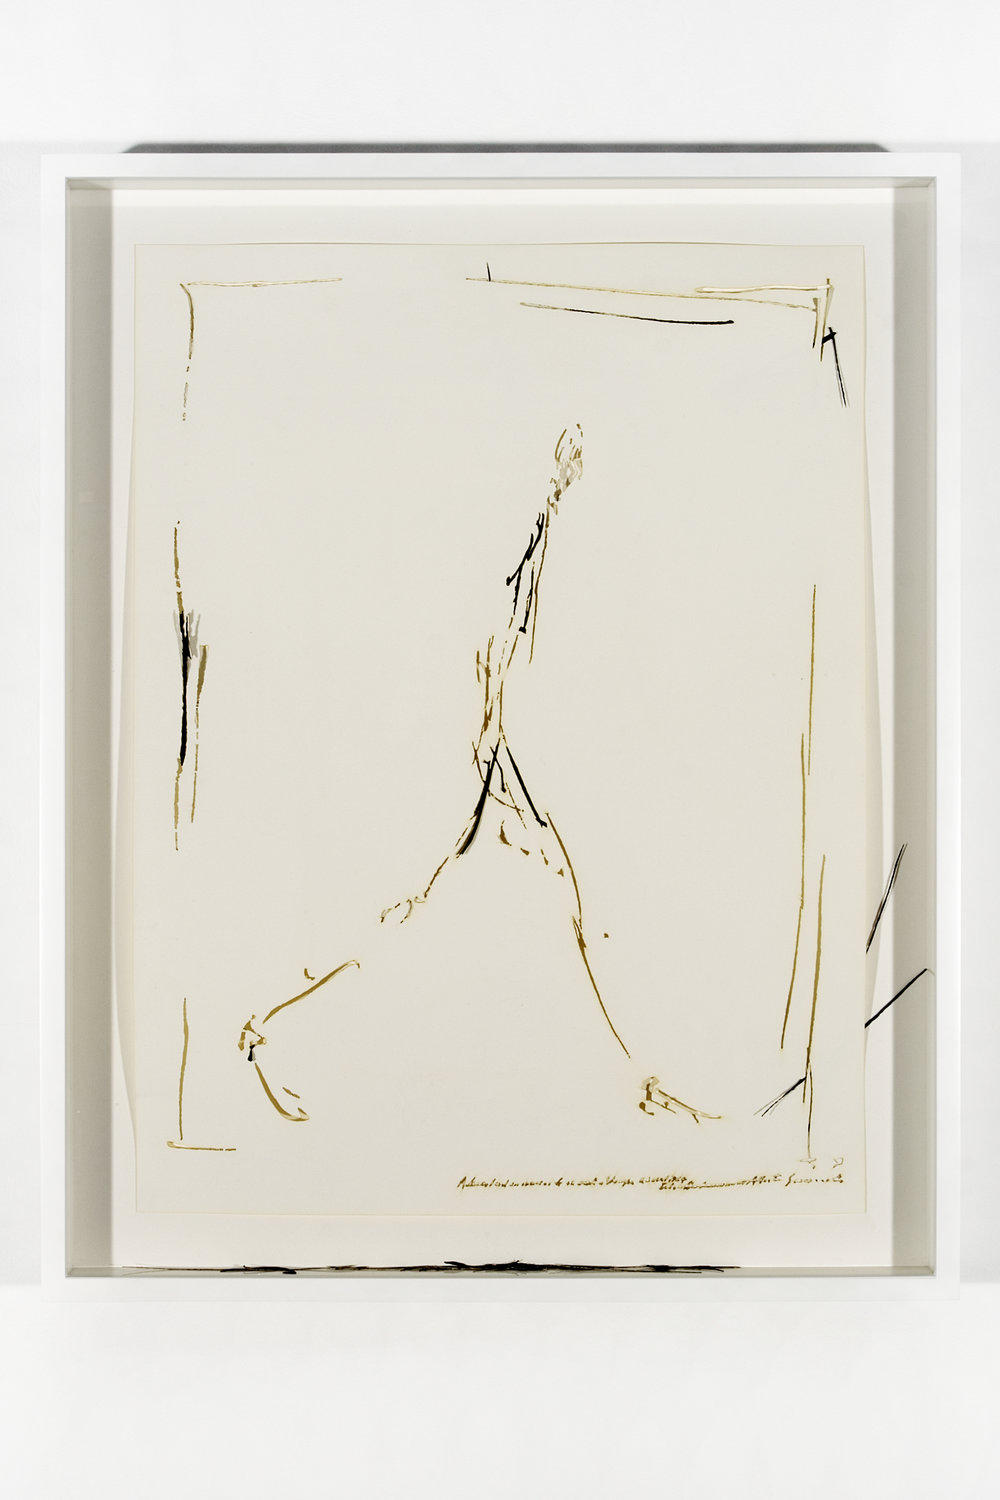 """Collapsed Drawing: """"L'homme qui marche"""" (Alberto Giacometti), 2007 laser-cut paper and laser-cut archival digital print mounted on museum board 70,4 x 55,5 cm - 27 3/4 x 21 7/8 inches (framed)"""